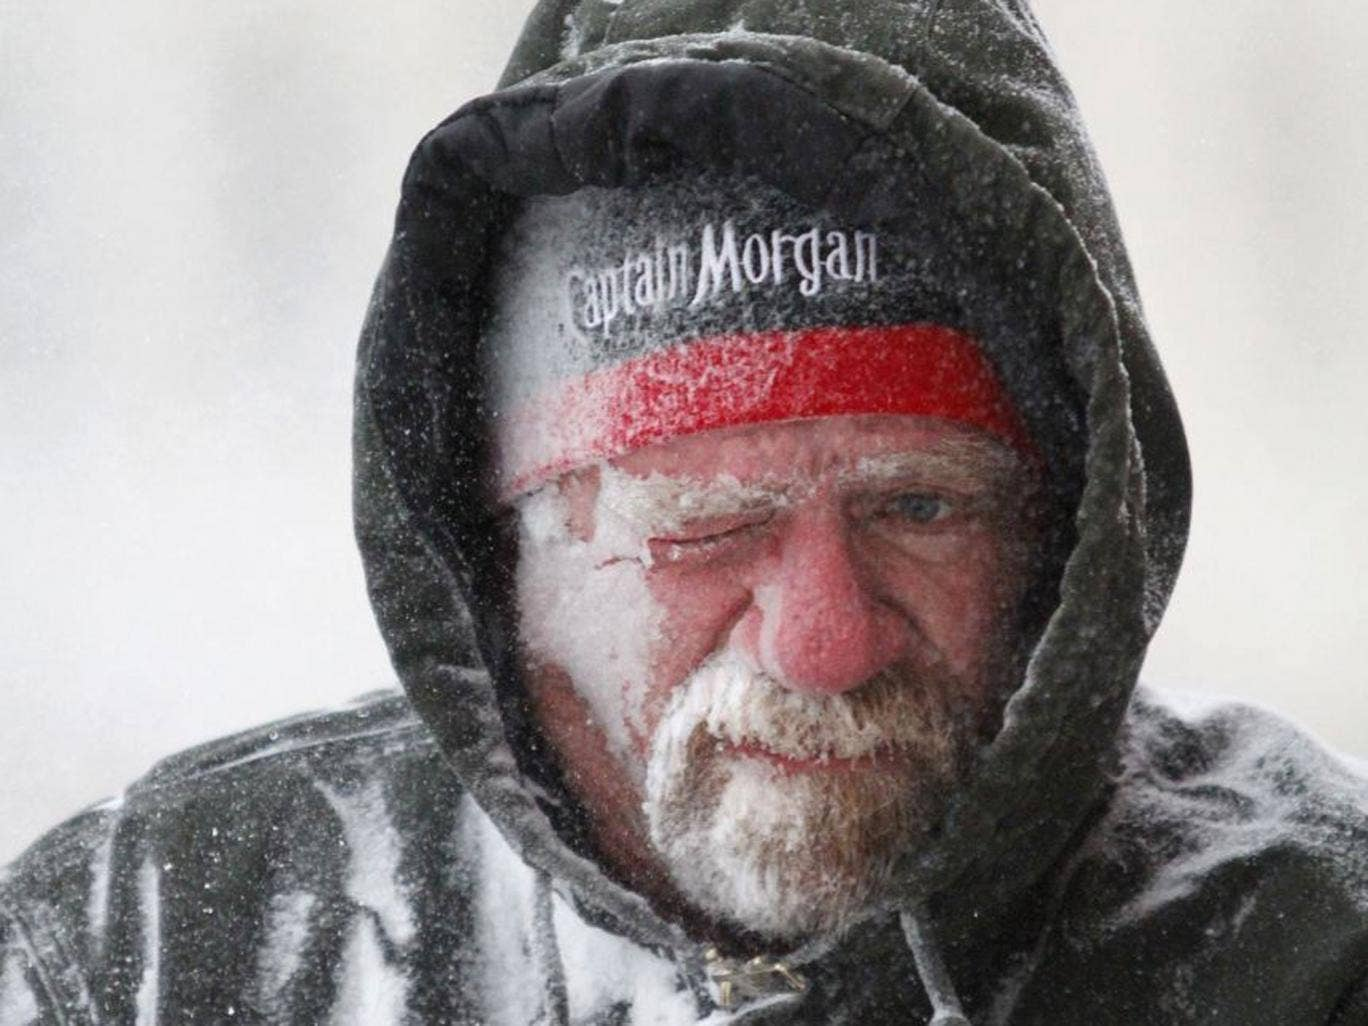 Allan Umscheid, owner of Yards By Al in Lawrence, Kan, feels the bitter wind and catches drifting snow on his face as he runs a snow blower early morning